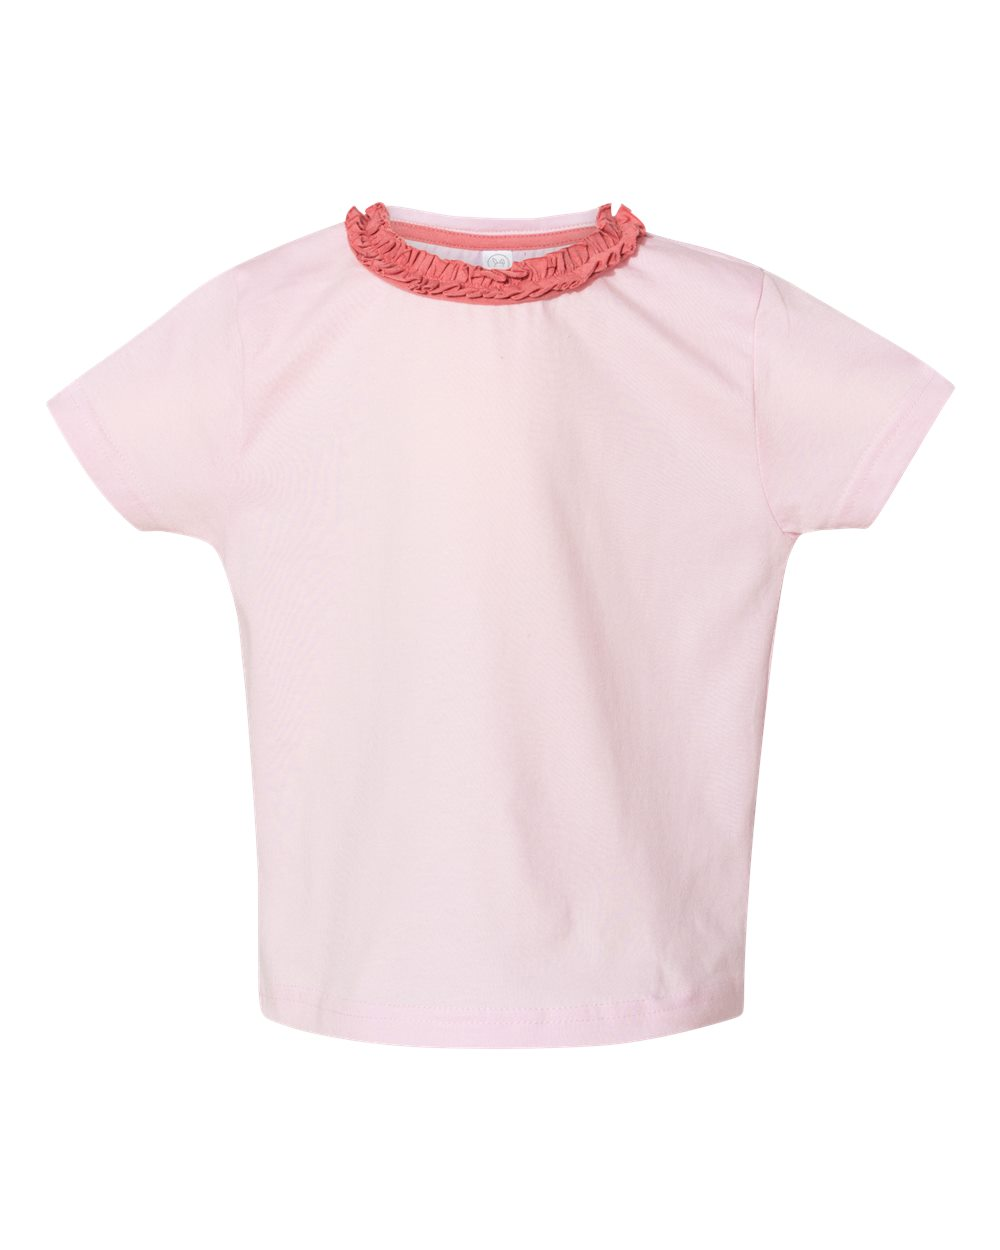 Rabbit Skins 3329 - Toddler Girls' Ruffle Neck Fine ...